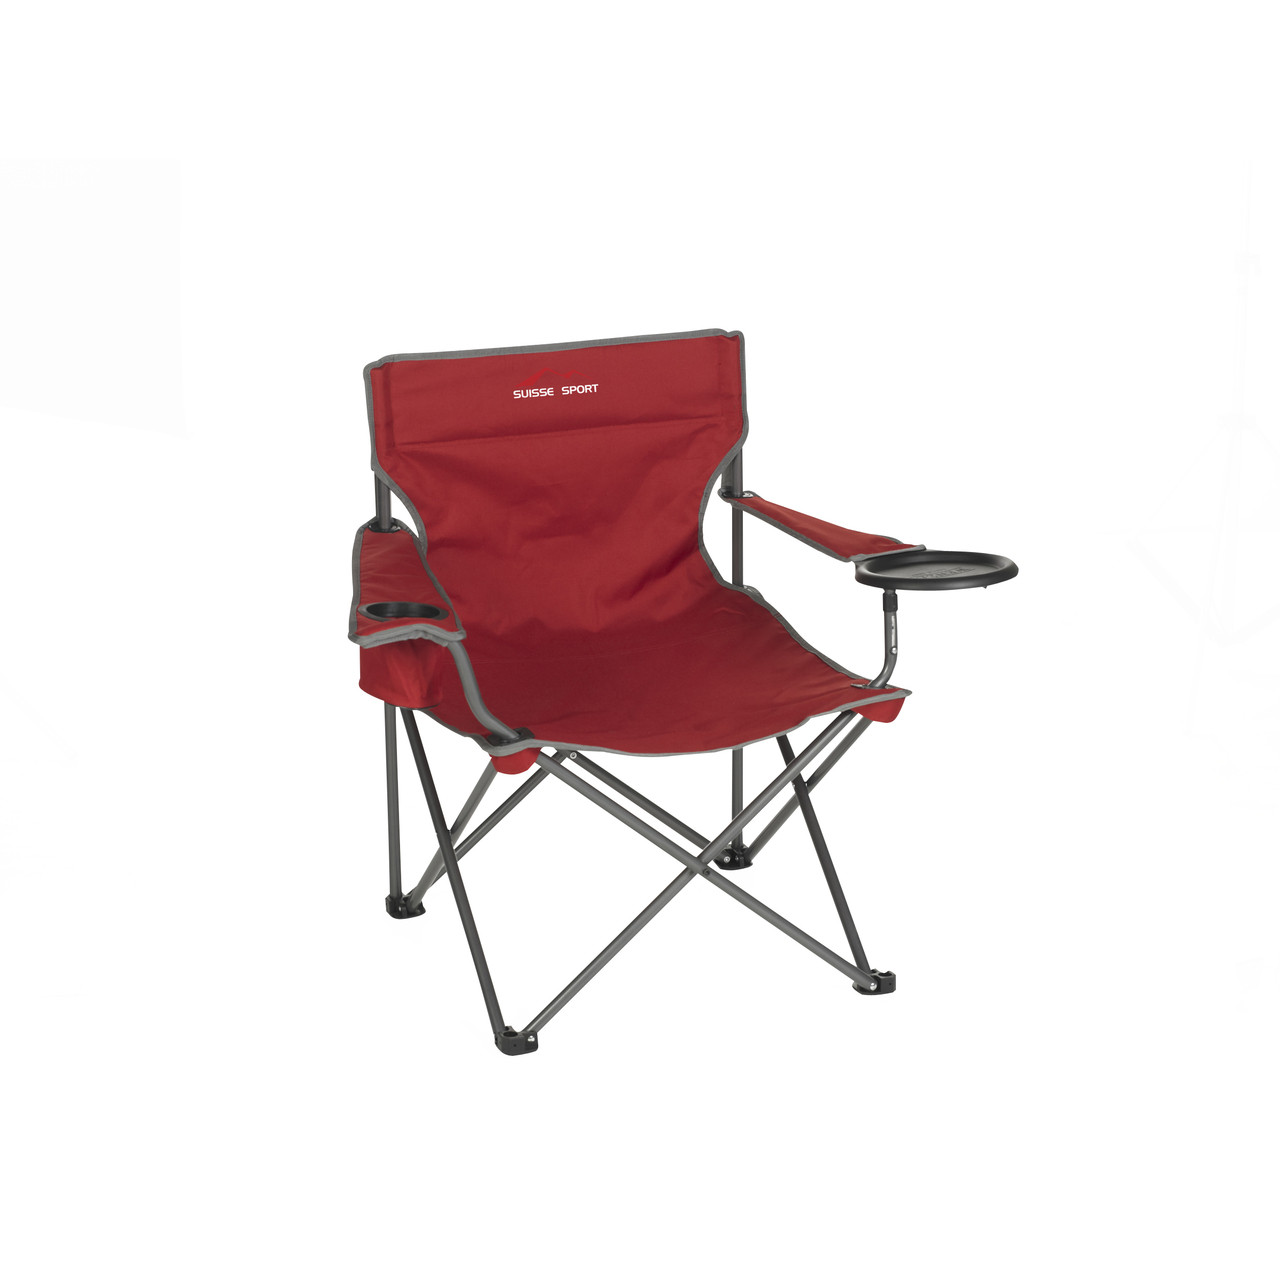 Wenzel Banquet Chair XL, red and gray, sitting down extended with the plate holder down